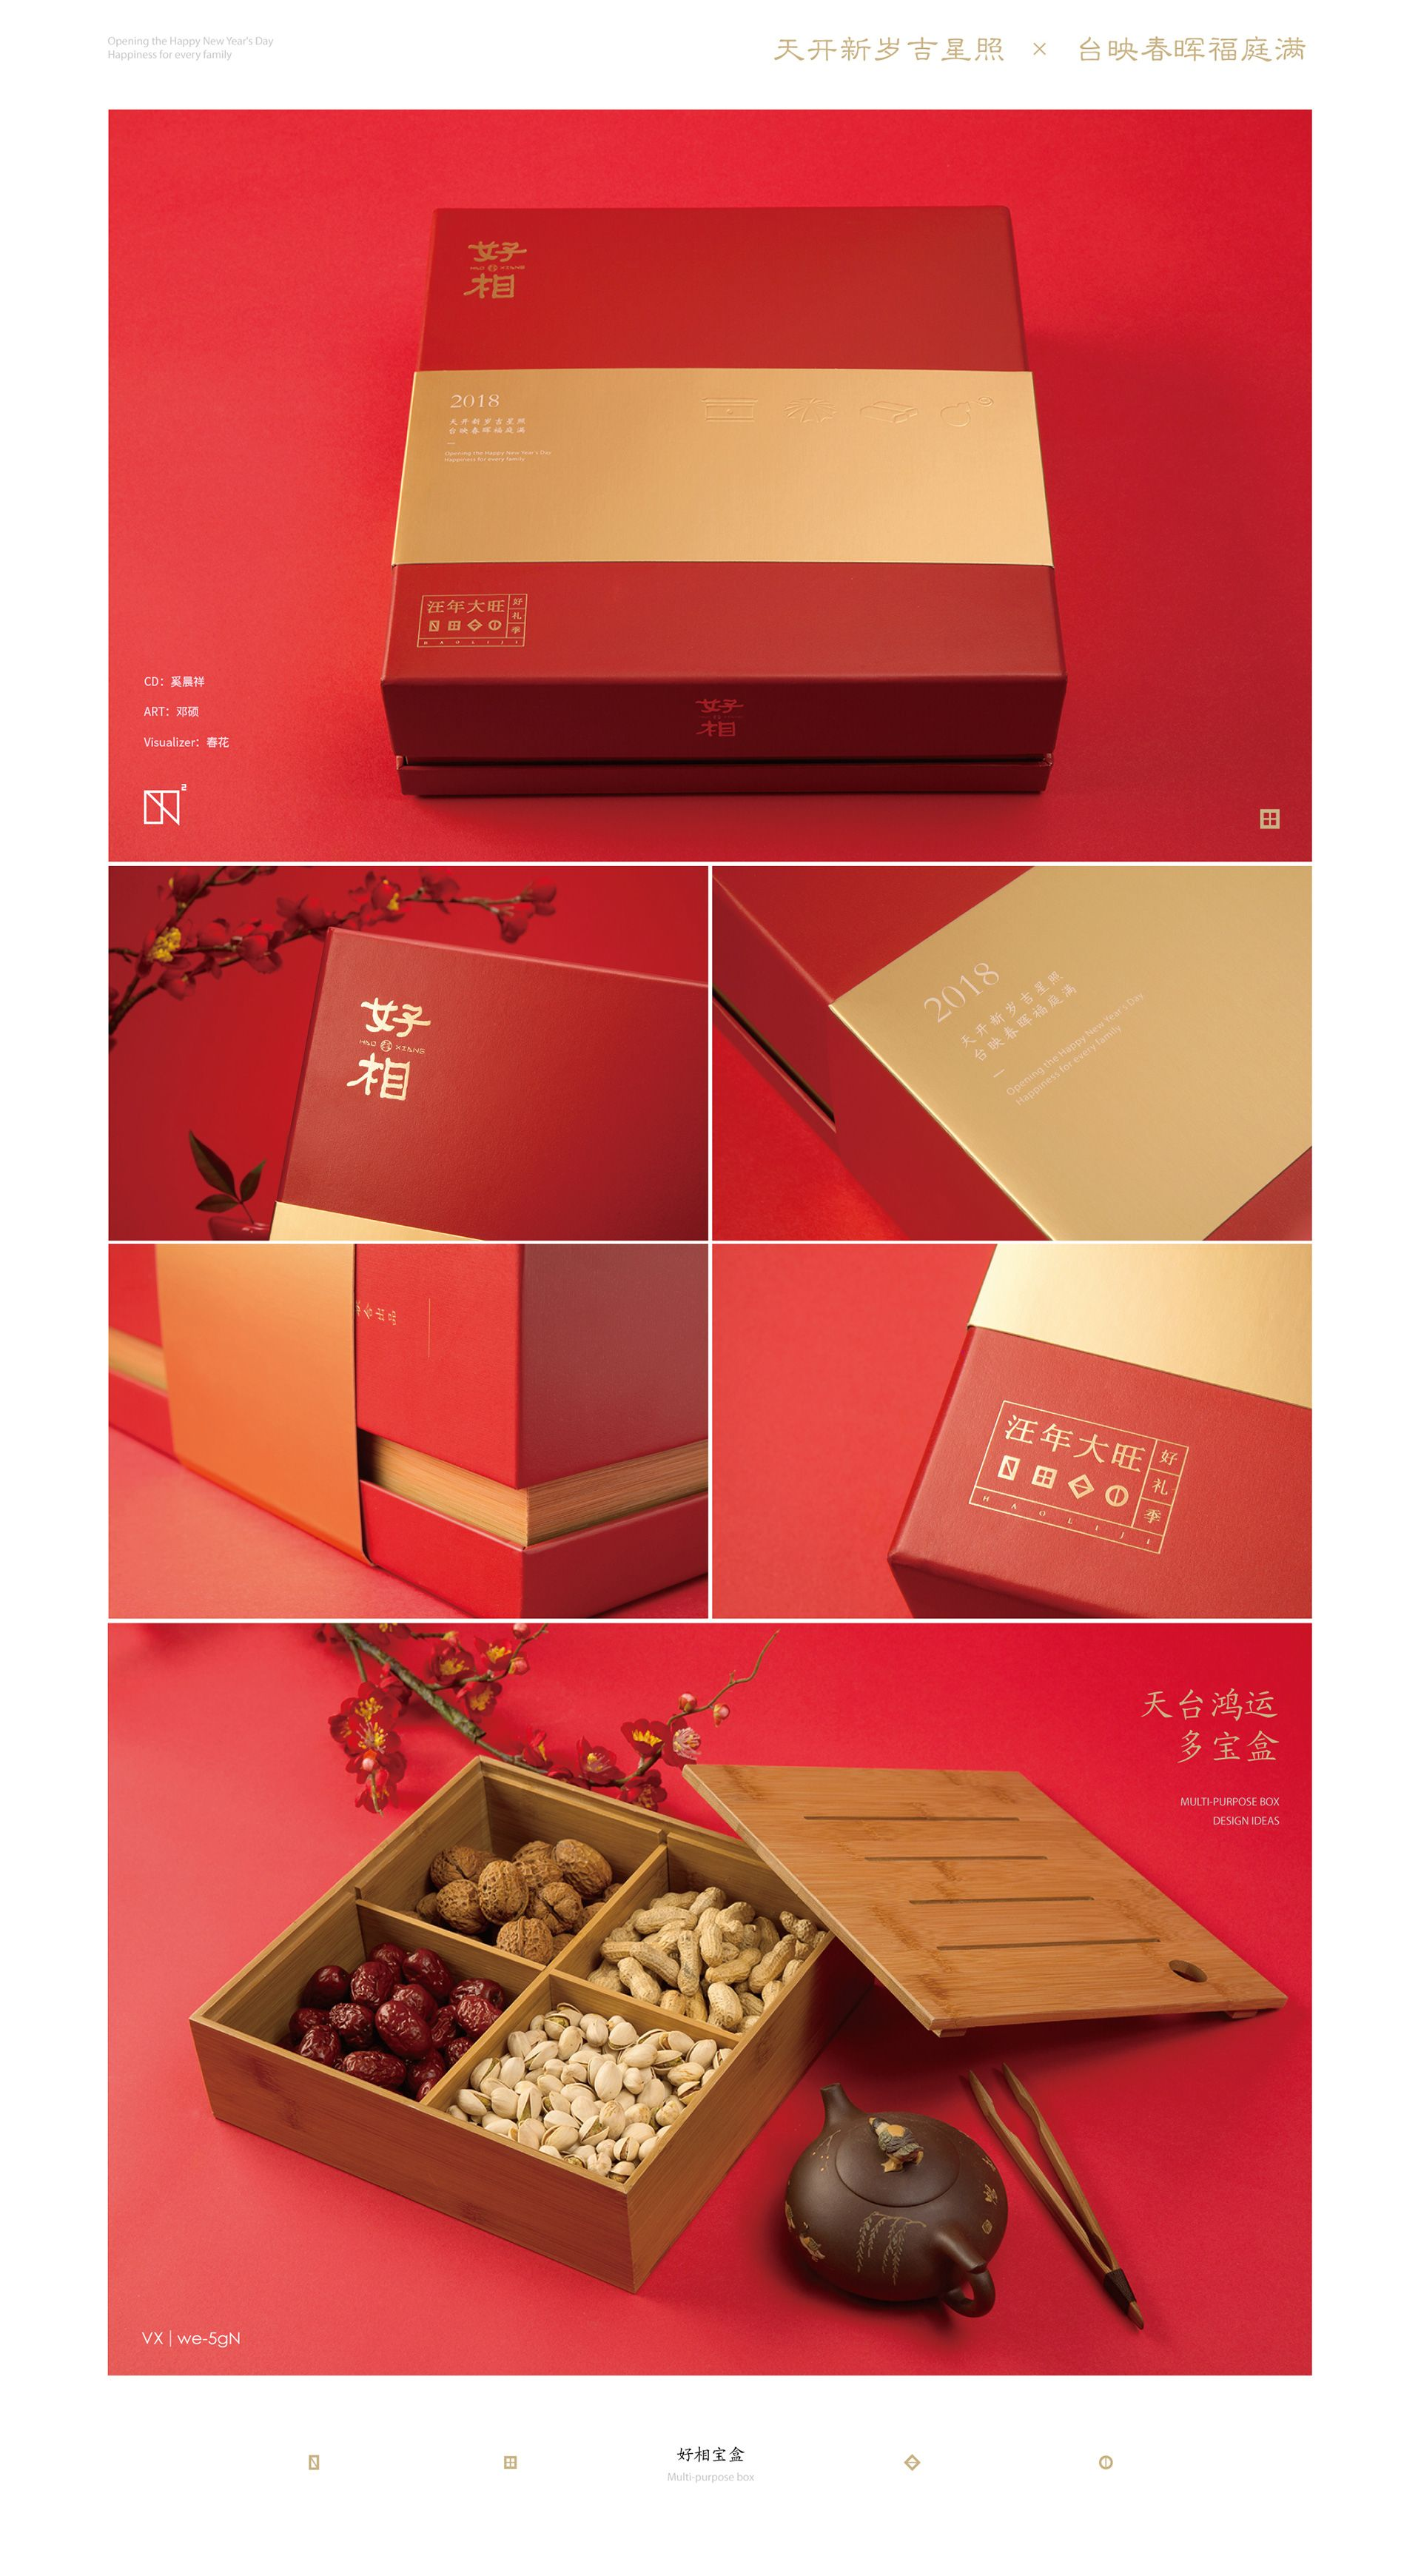 This Luxurious Packaging Plays With Texture In Order To Create A Sophisticated Design Packaging Design Packaging Design Inspiration Design